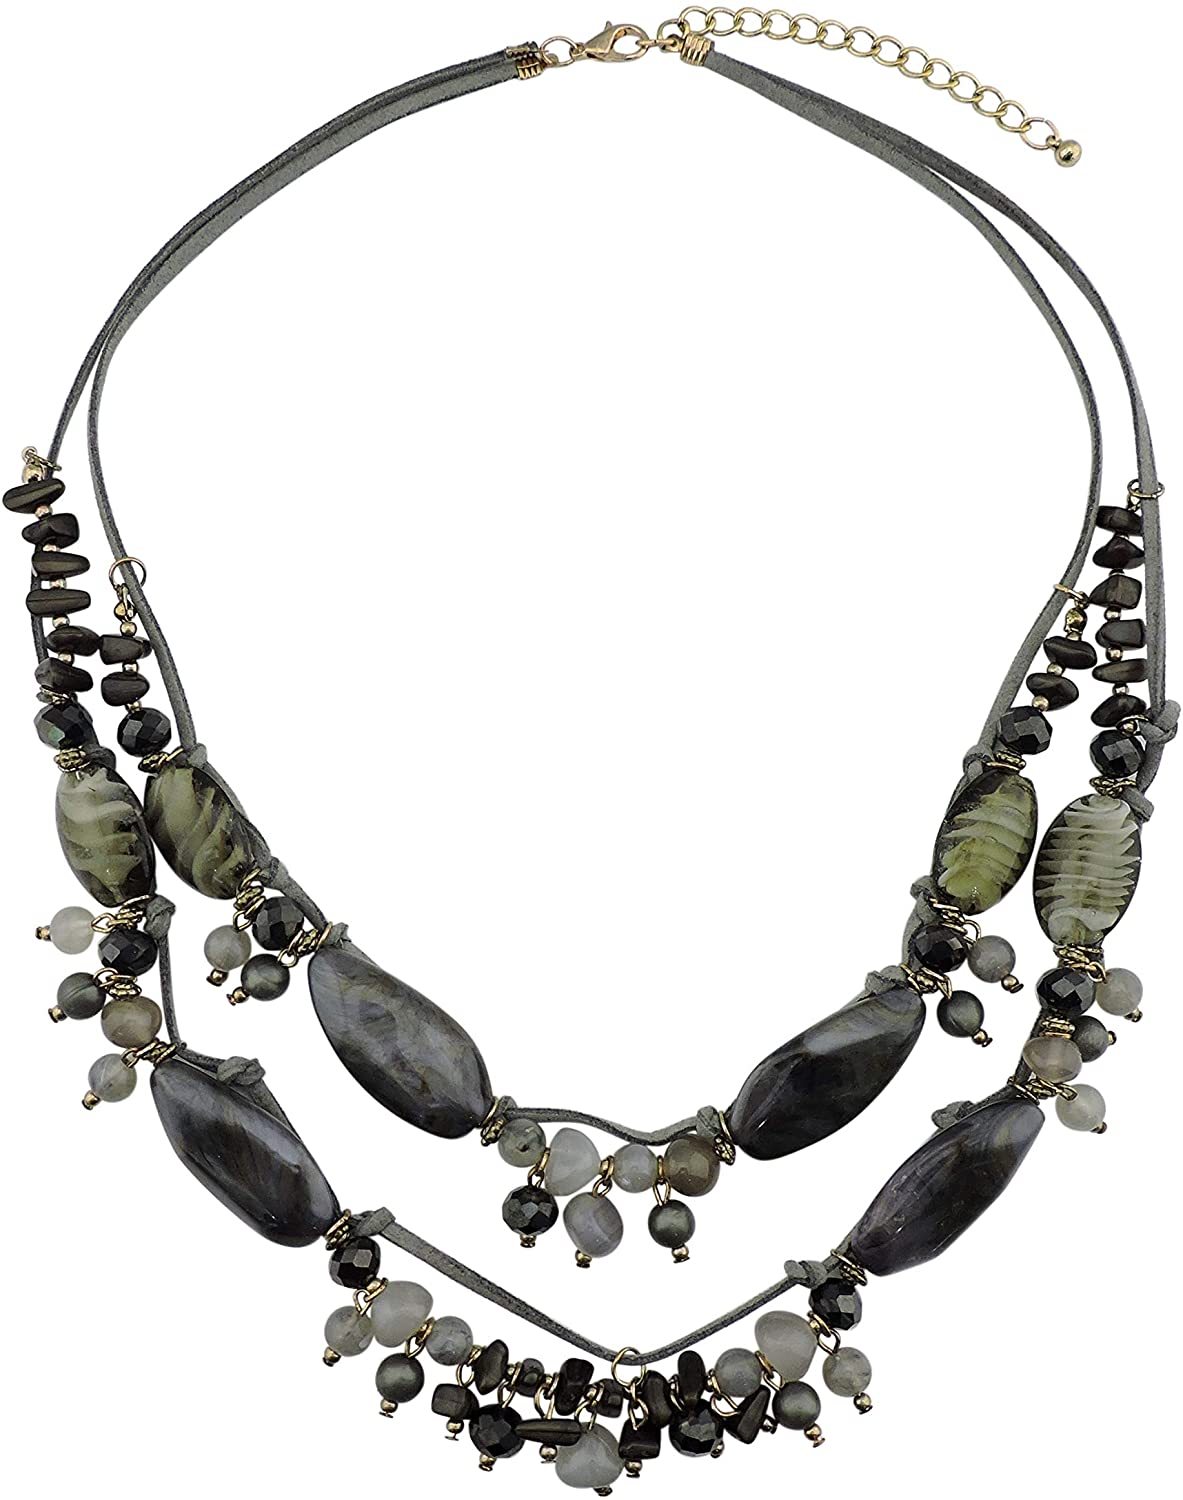 BOCAR 2 Layer Statement Pendant Necklace Strand Beaded 22.5